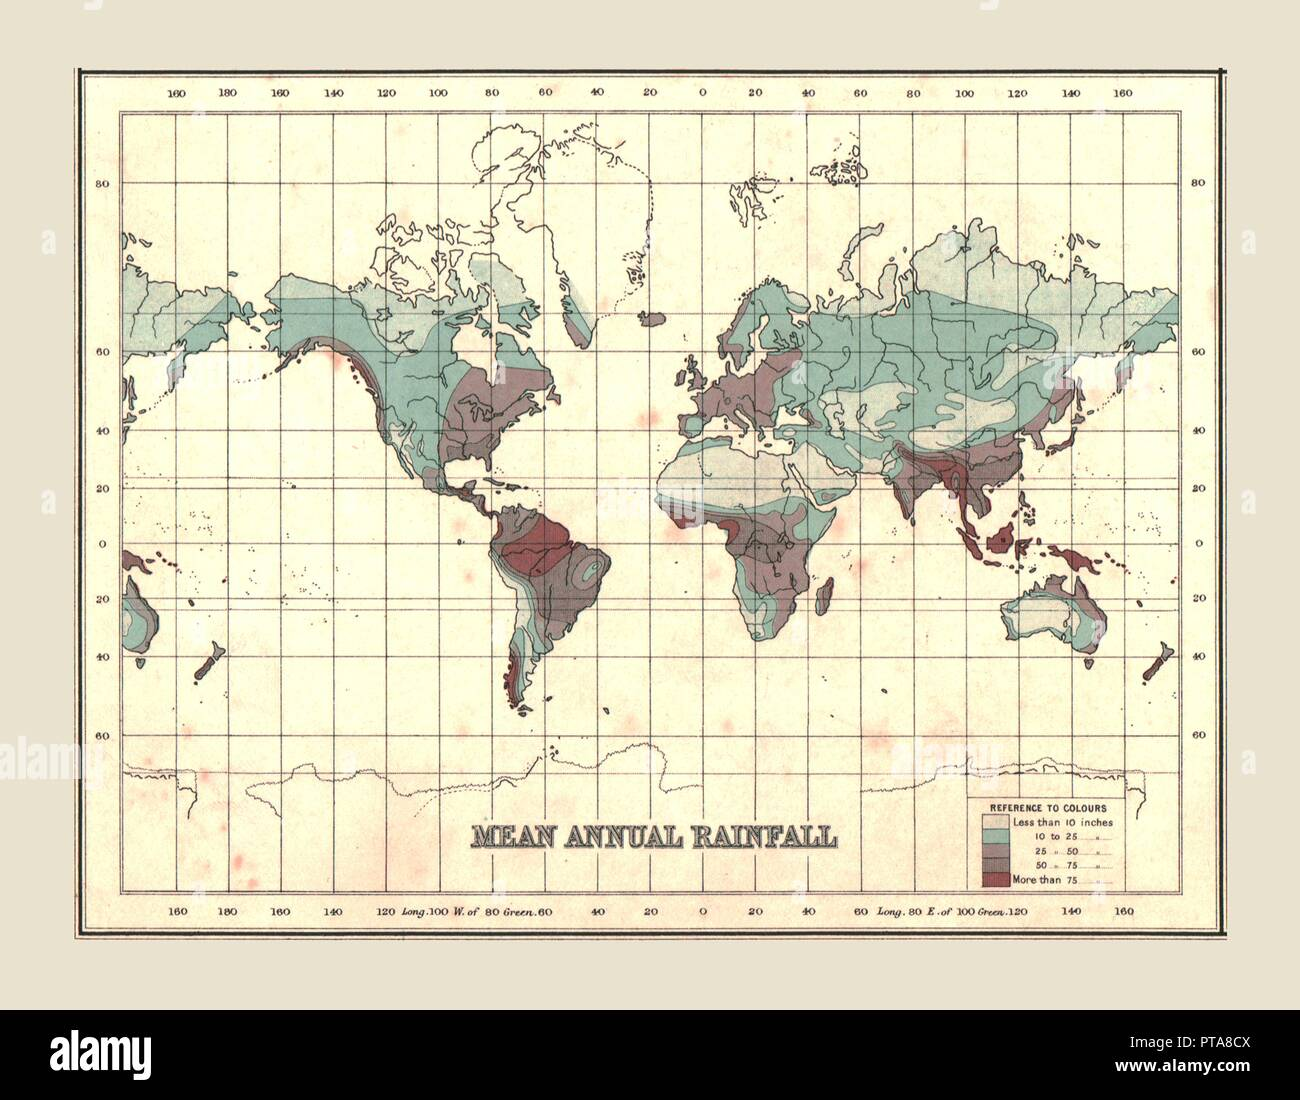 World Map Showing Mean Annual Rainfall 1902 From The Century Atlas